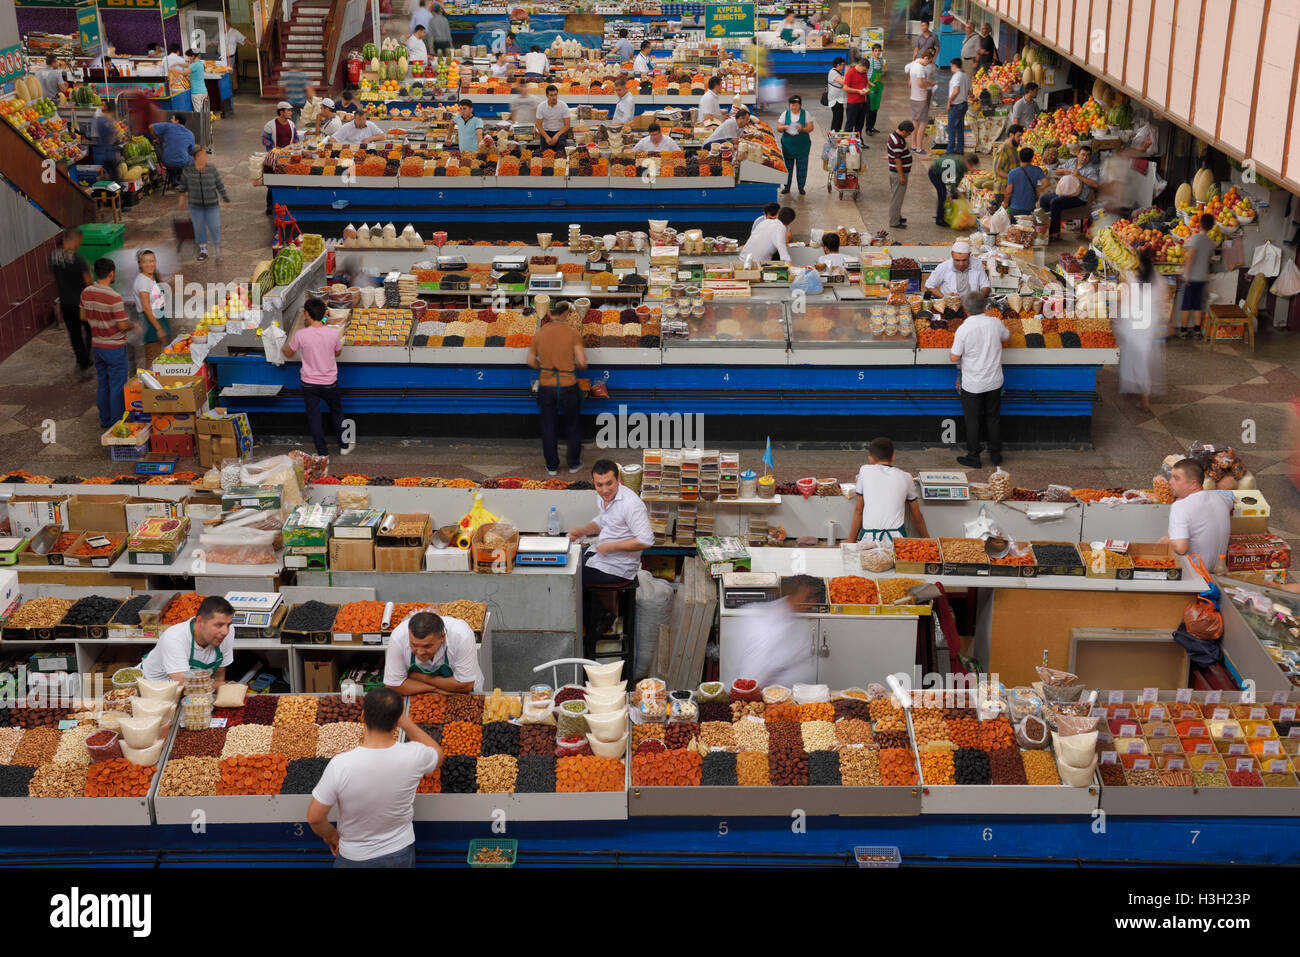 Overview of dry produce section at Green Bazaar Almaty Kazakhstan - Stock Image